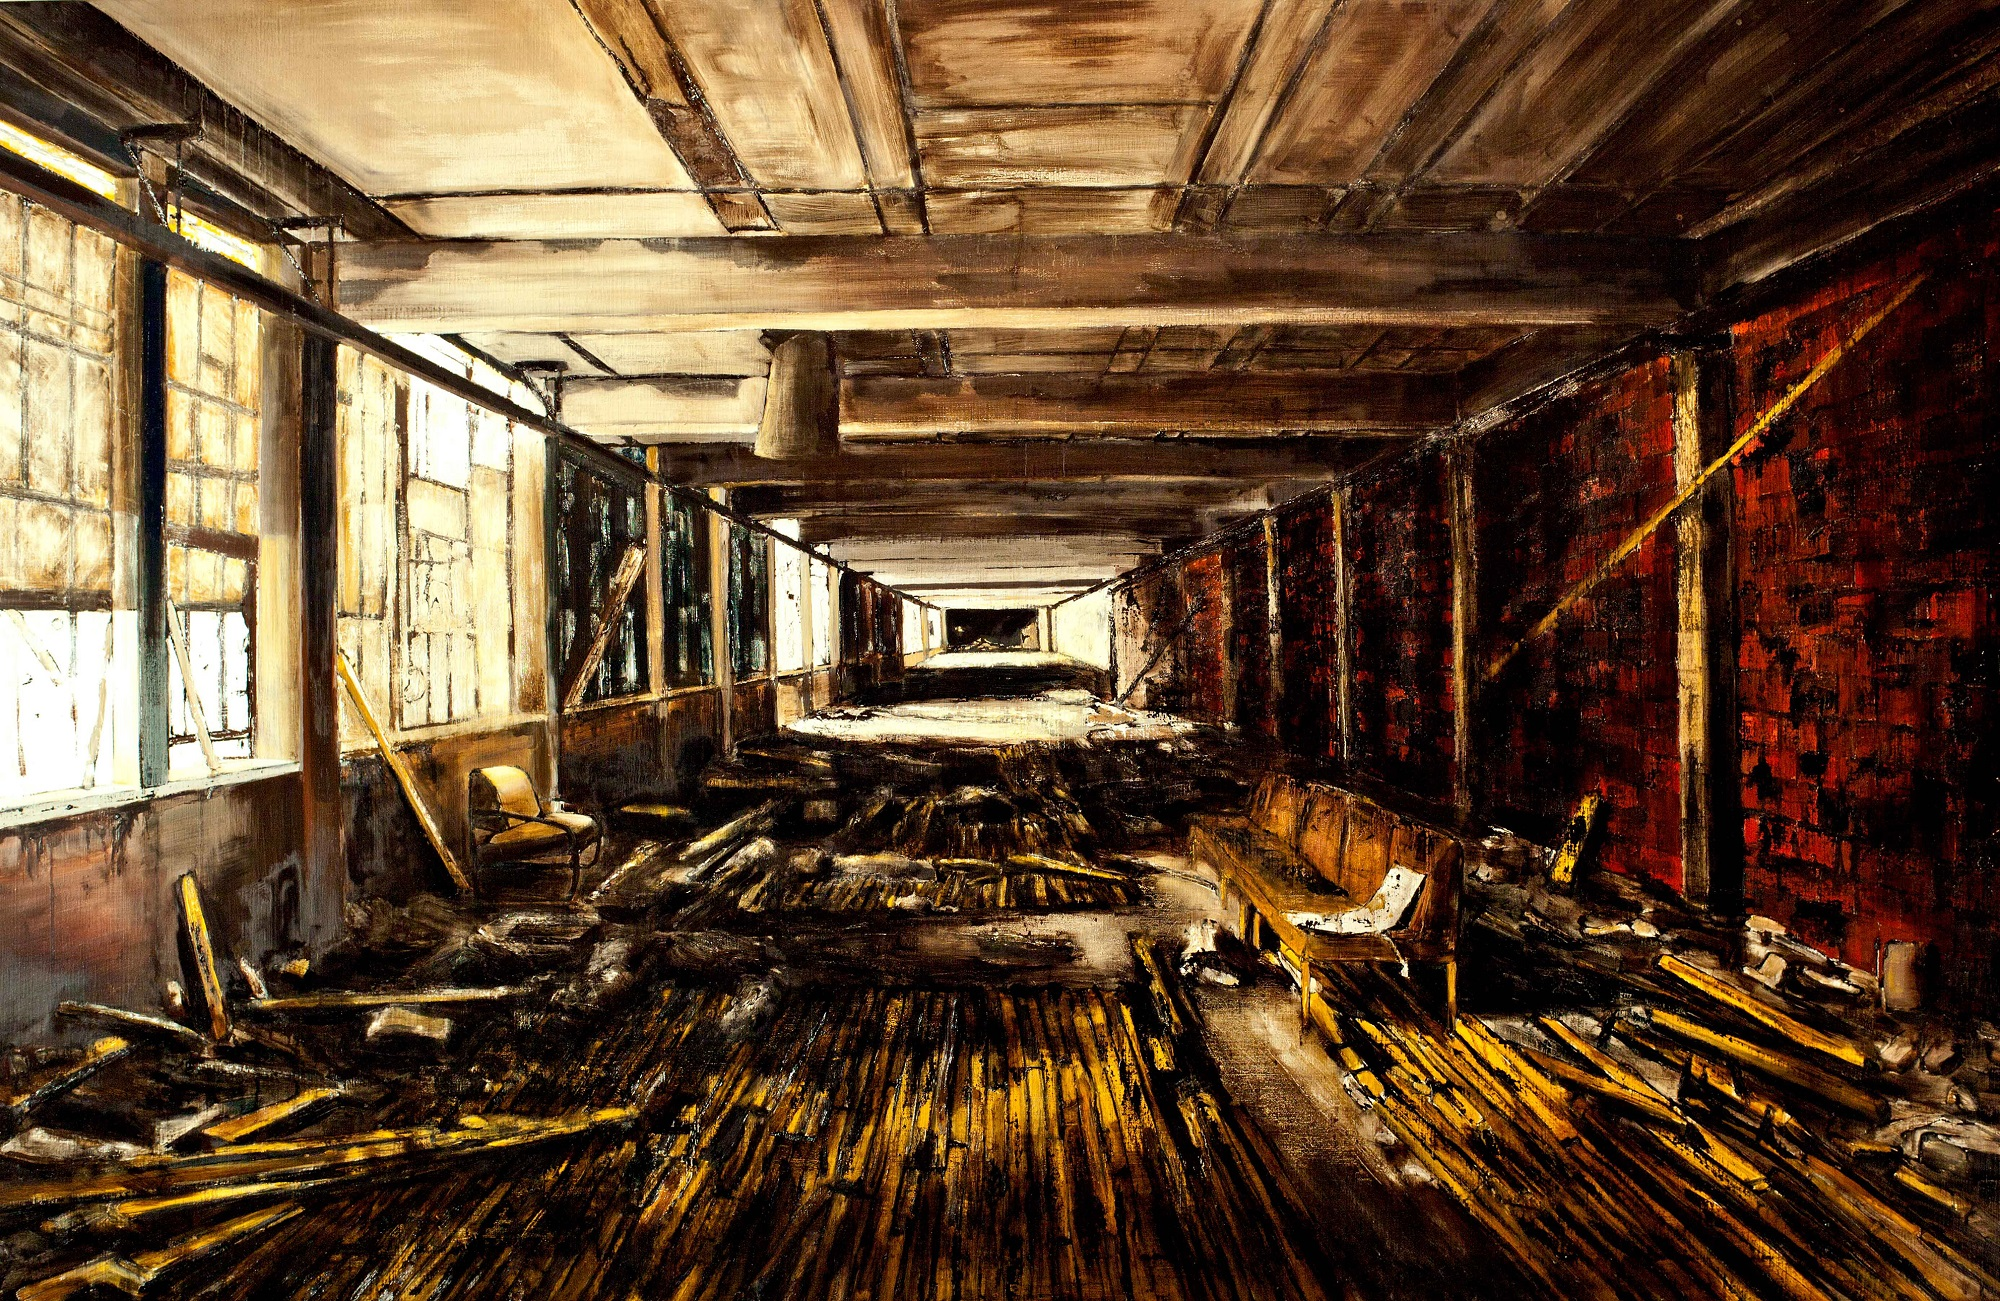 'Interior (5)' Jarik Jongman Oil on Canvas, 140cm x 220cm, 2013